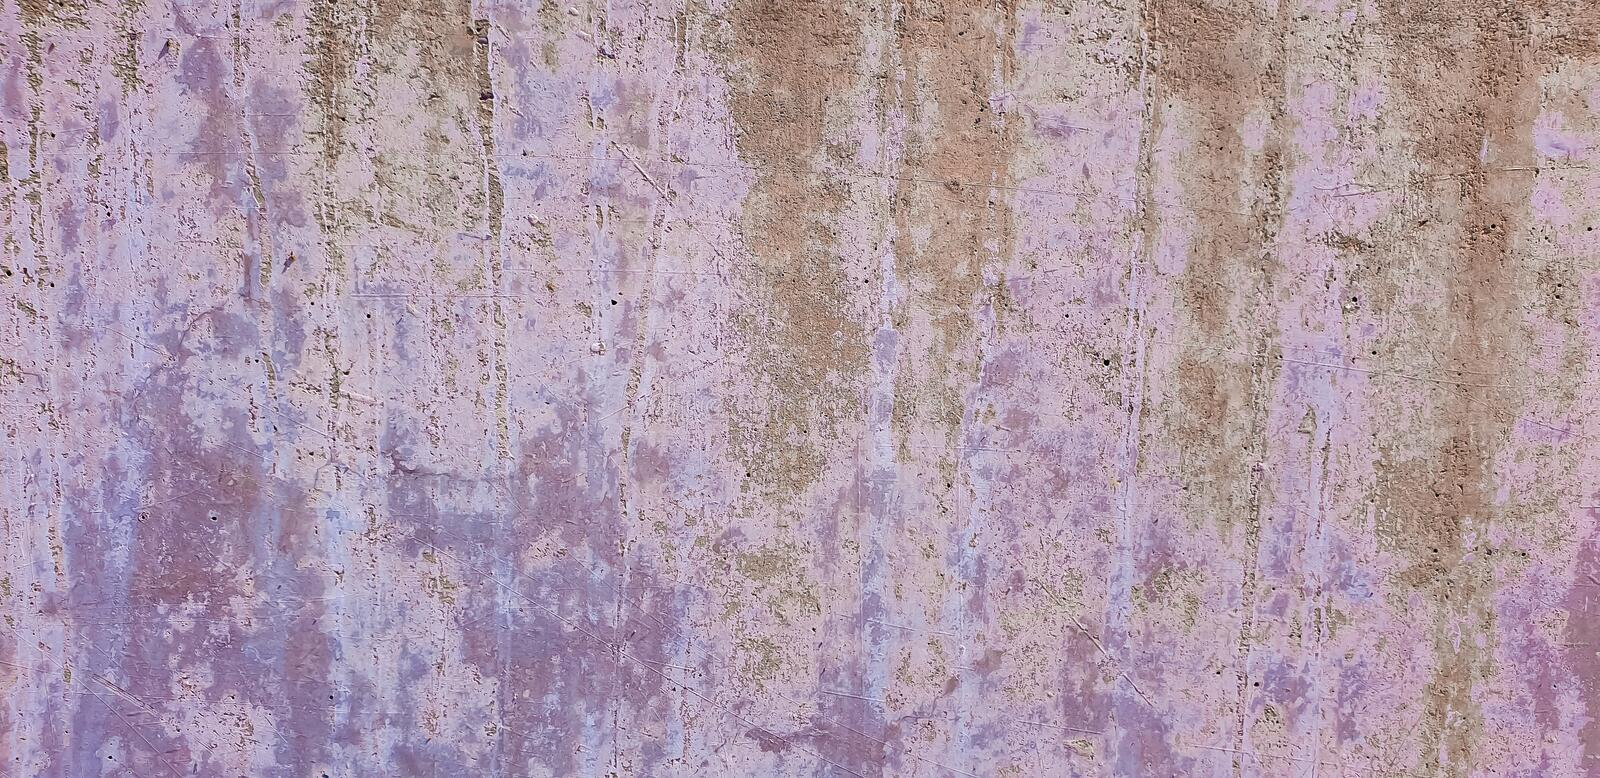 Concrete texture wall background shabby chic royalty free stock image